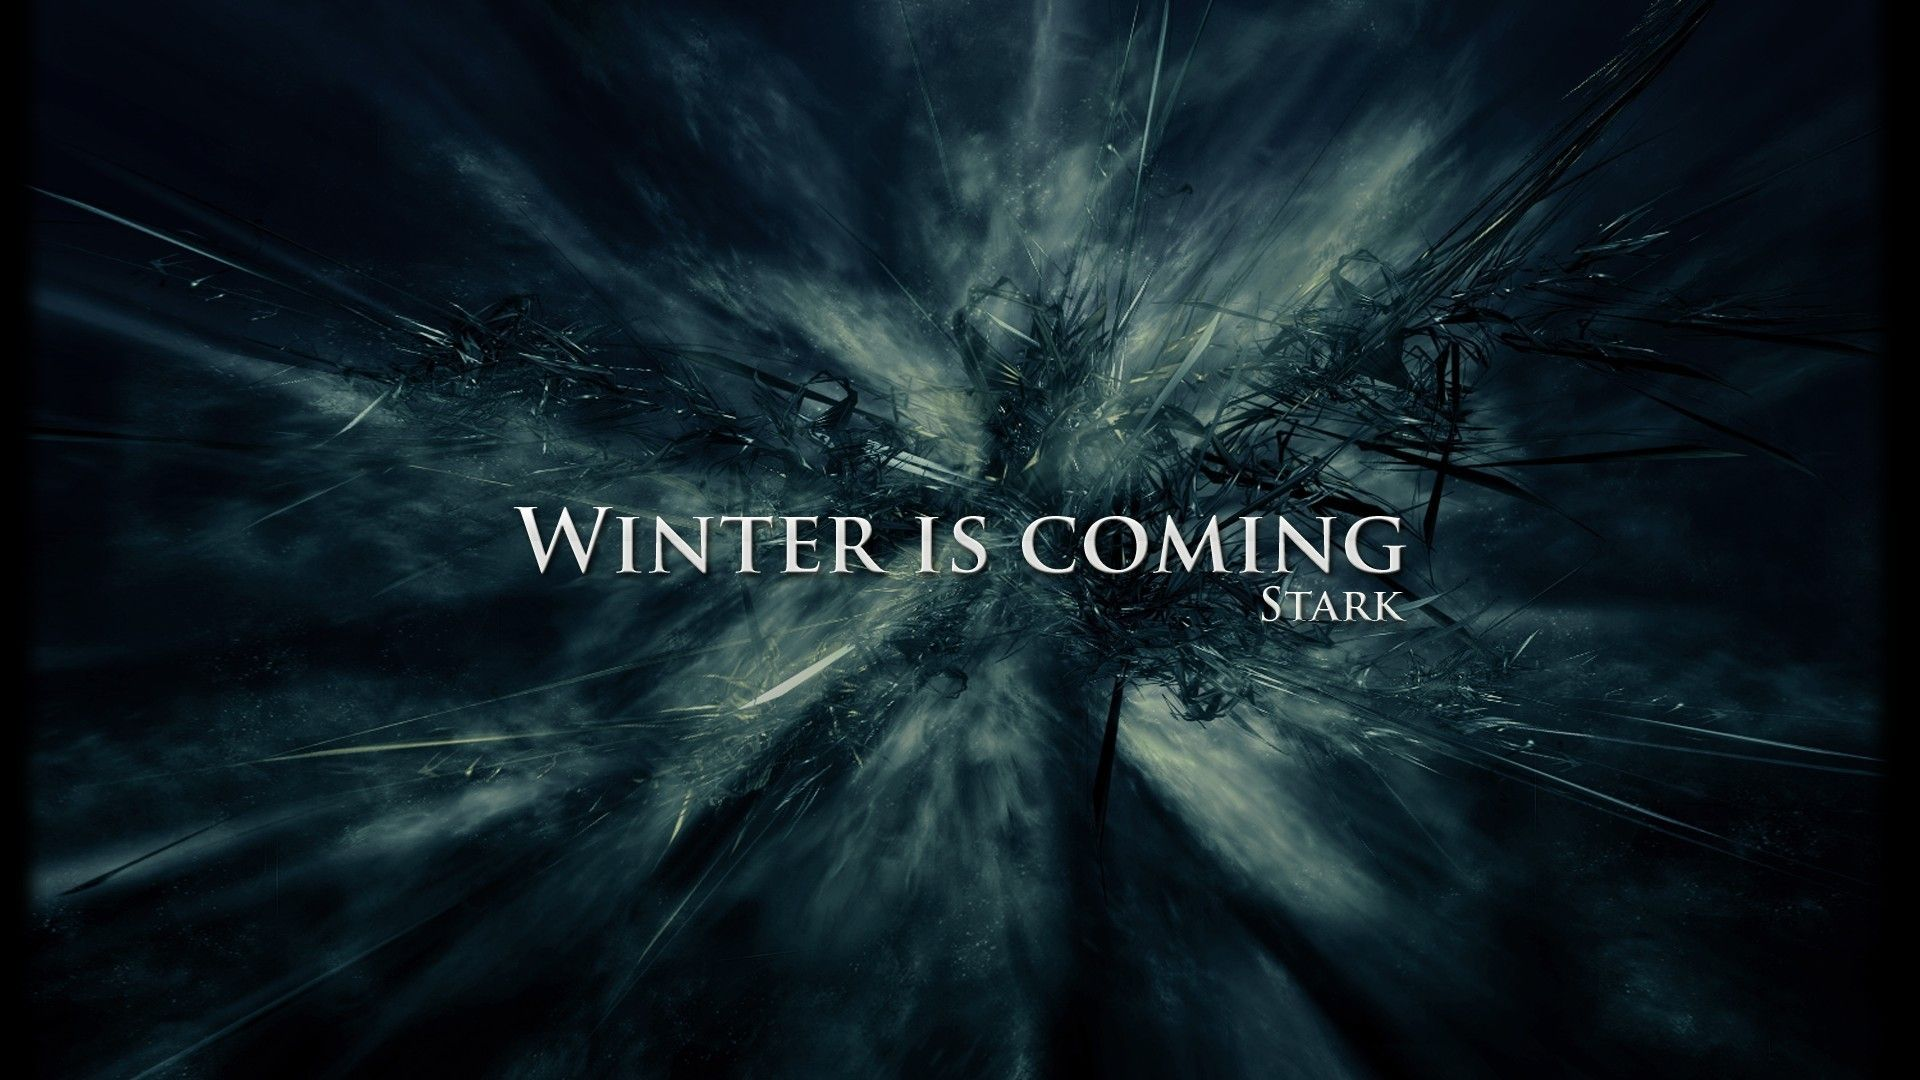 Game Of Thrones Wallpaper Winter Is Coming Wallpaper Winter Is Coming Stark Winter Is Coming